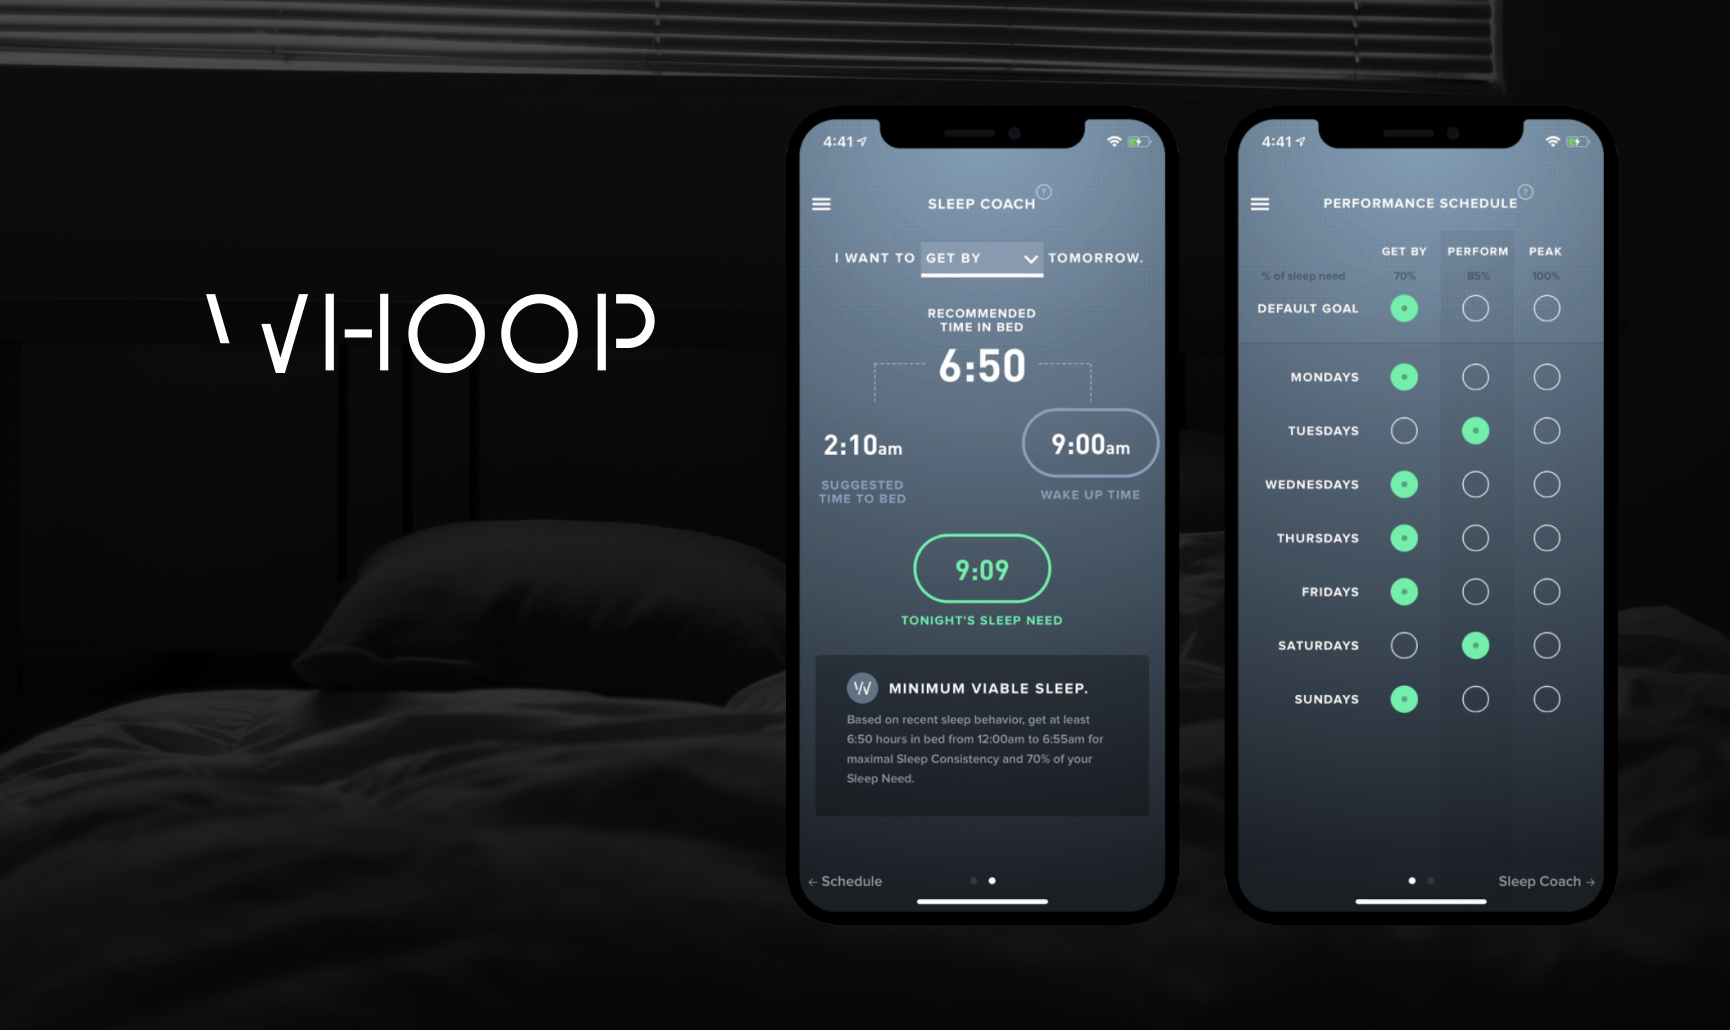 WHOOP is a fitness and sleep tracker